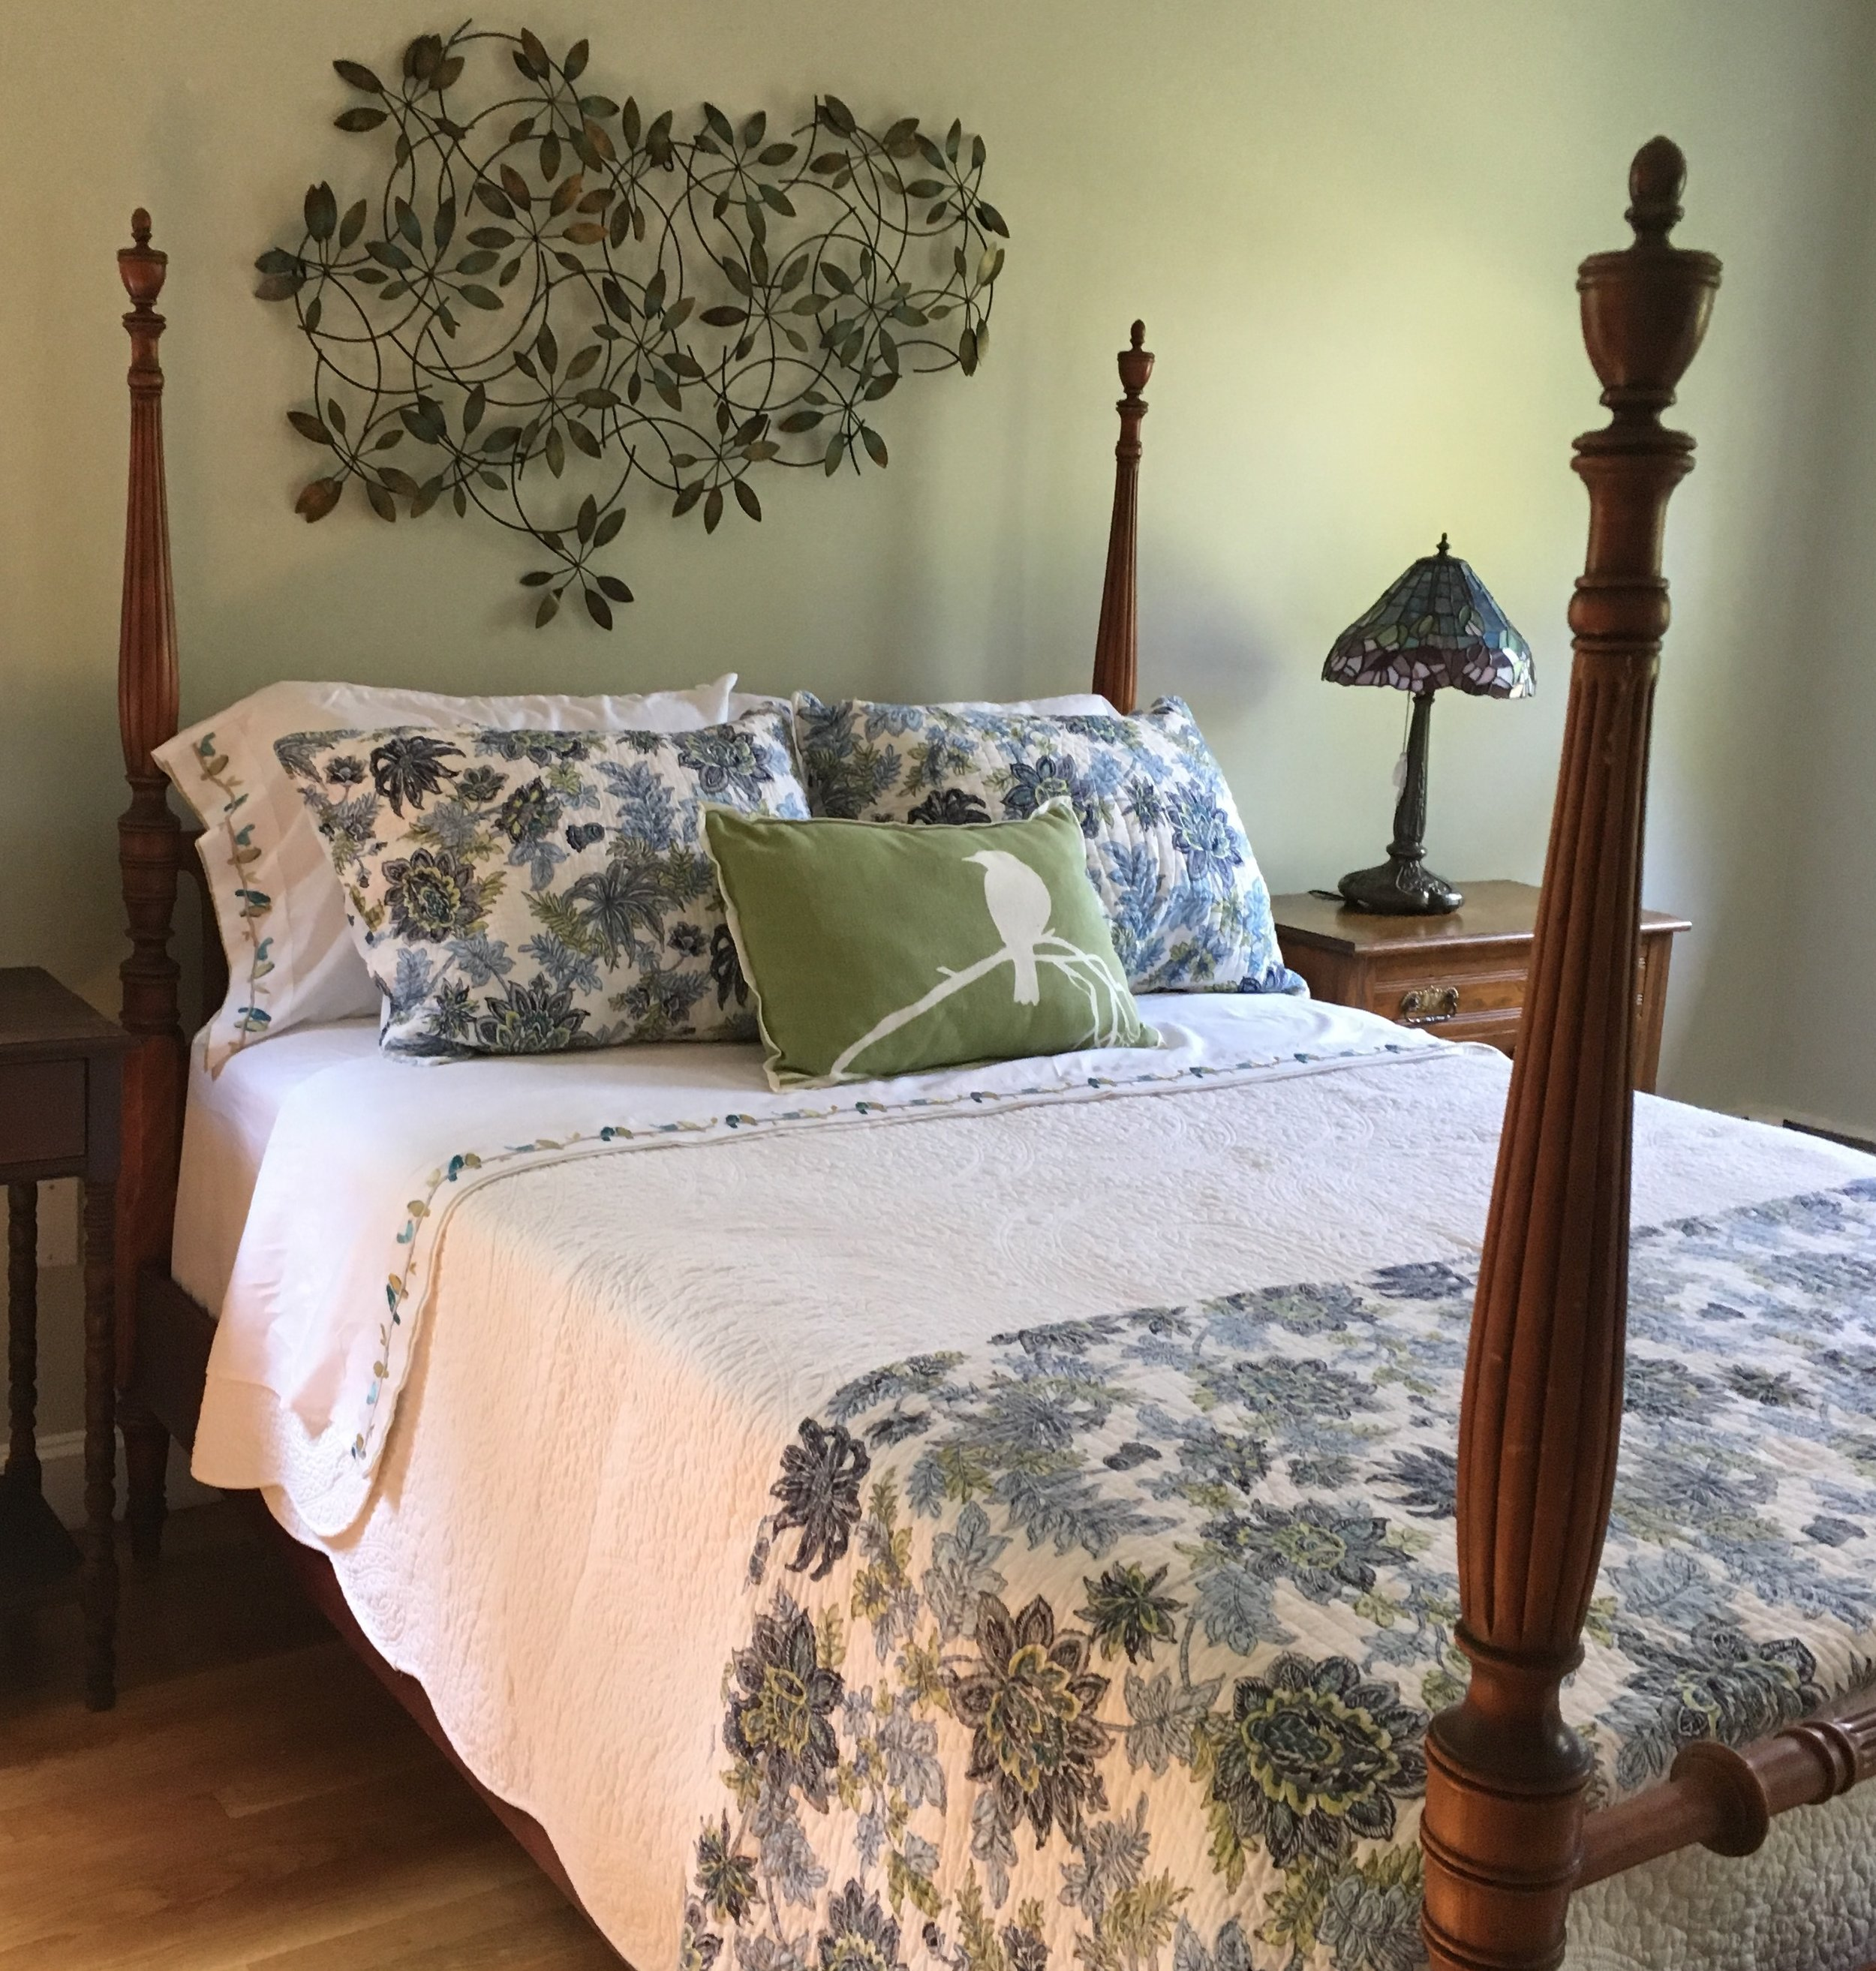 Bed styling - pattern on shams and folded coverlet add just the right amount of pretty pattern without overwhelming.